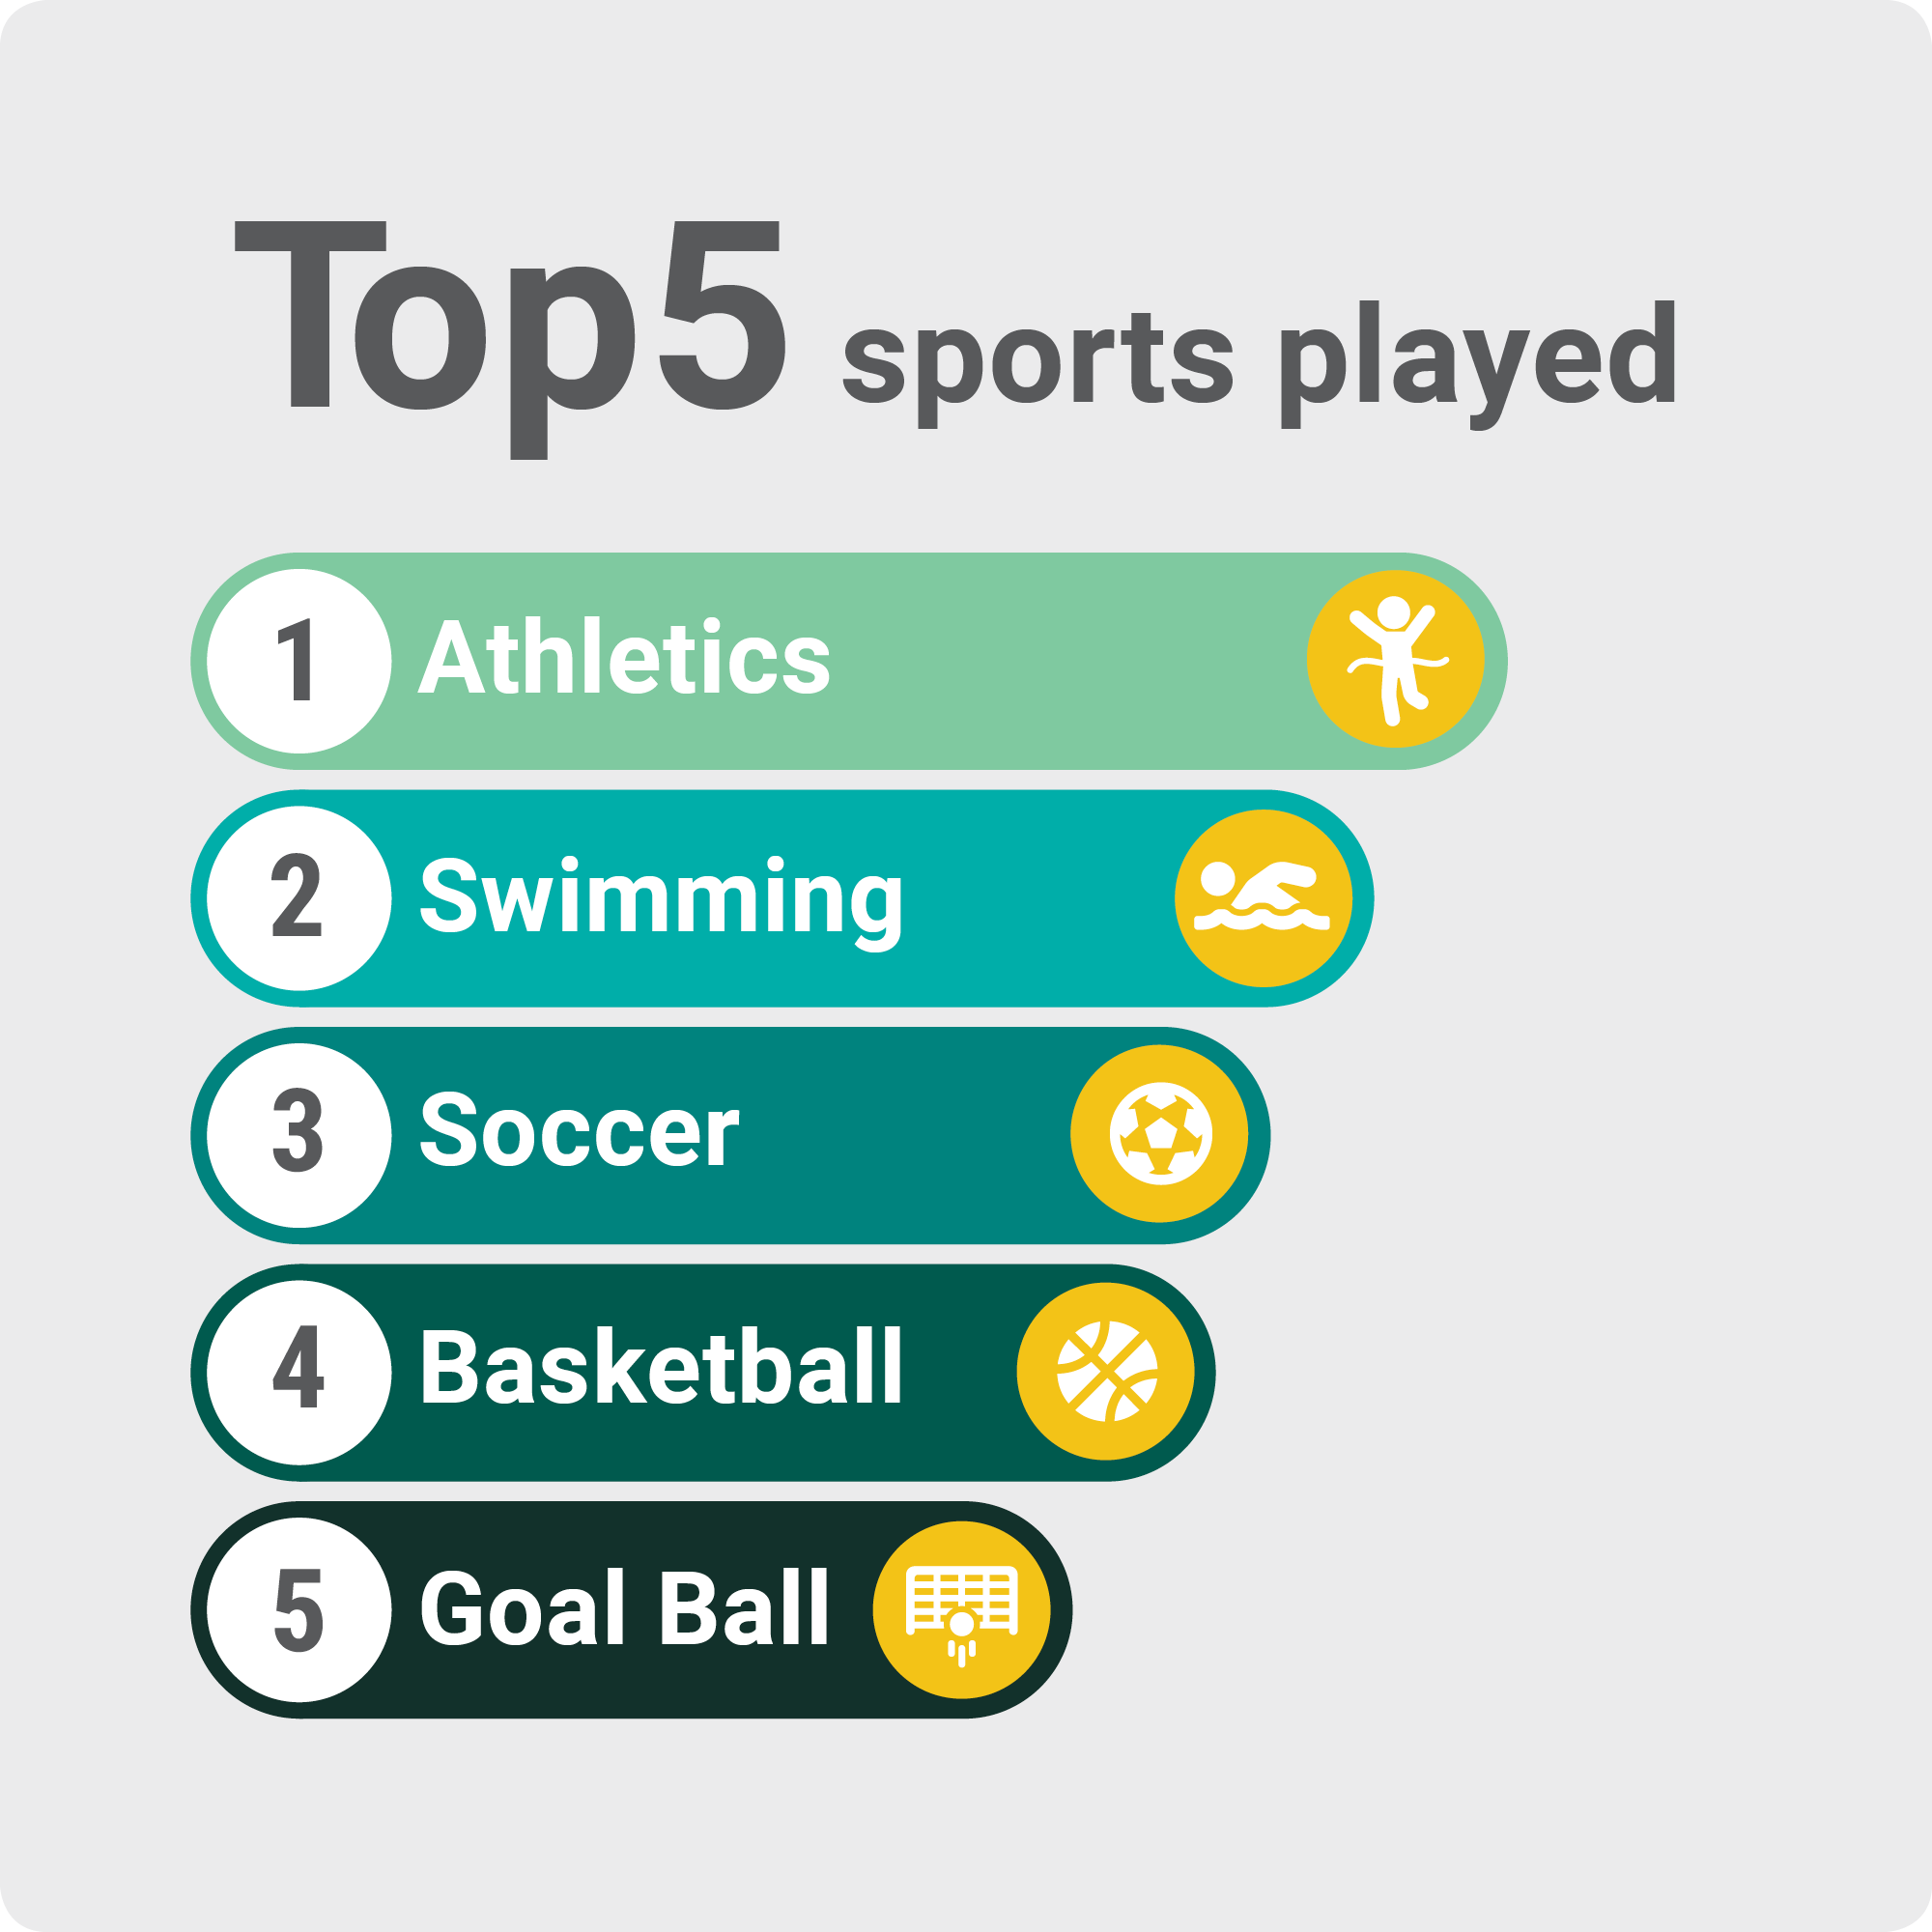 Top 5 sports played